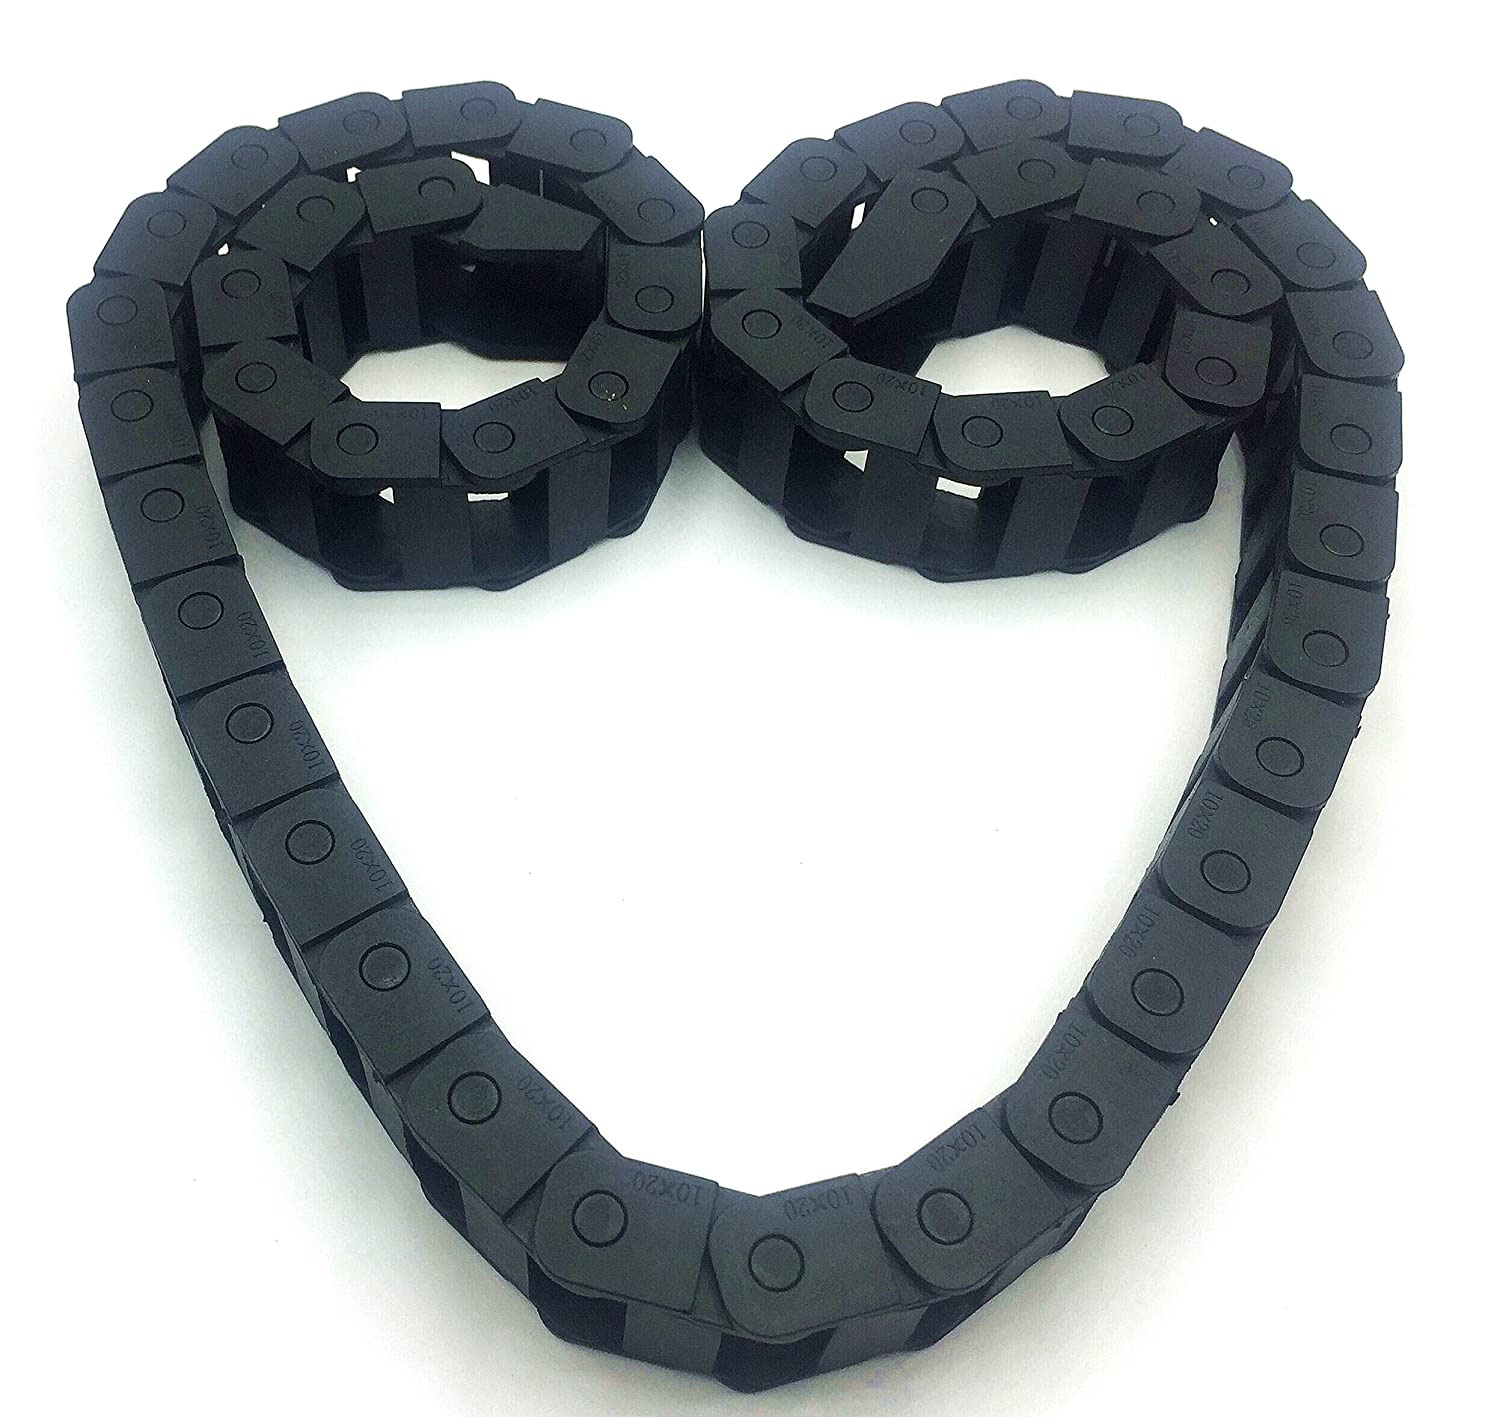 Cable Chain 10x20 mm 1M Non Snap-Open Plastic Towline Transmission Drag Chain Machine Auxcell Ltd 5559007229